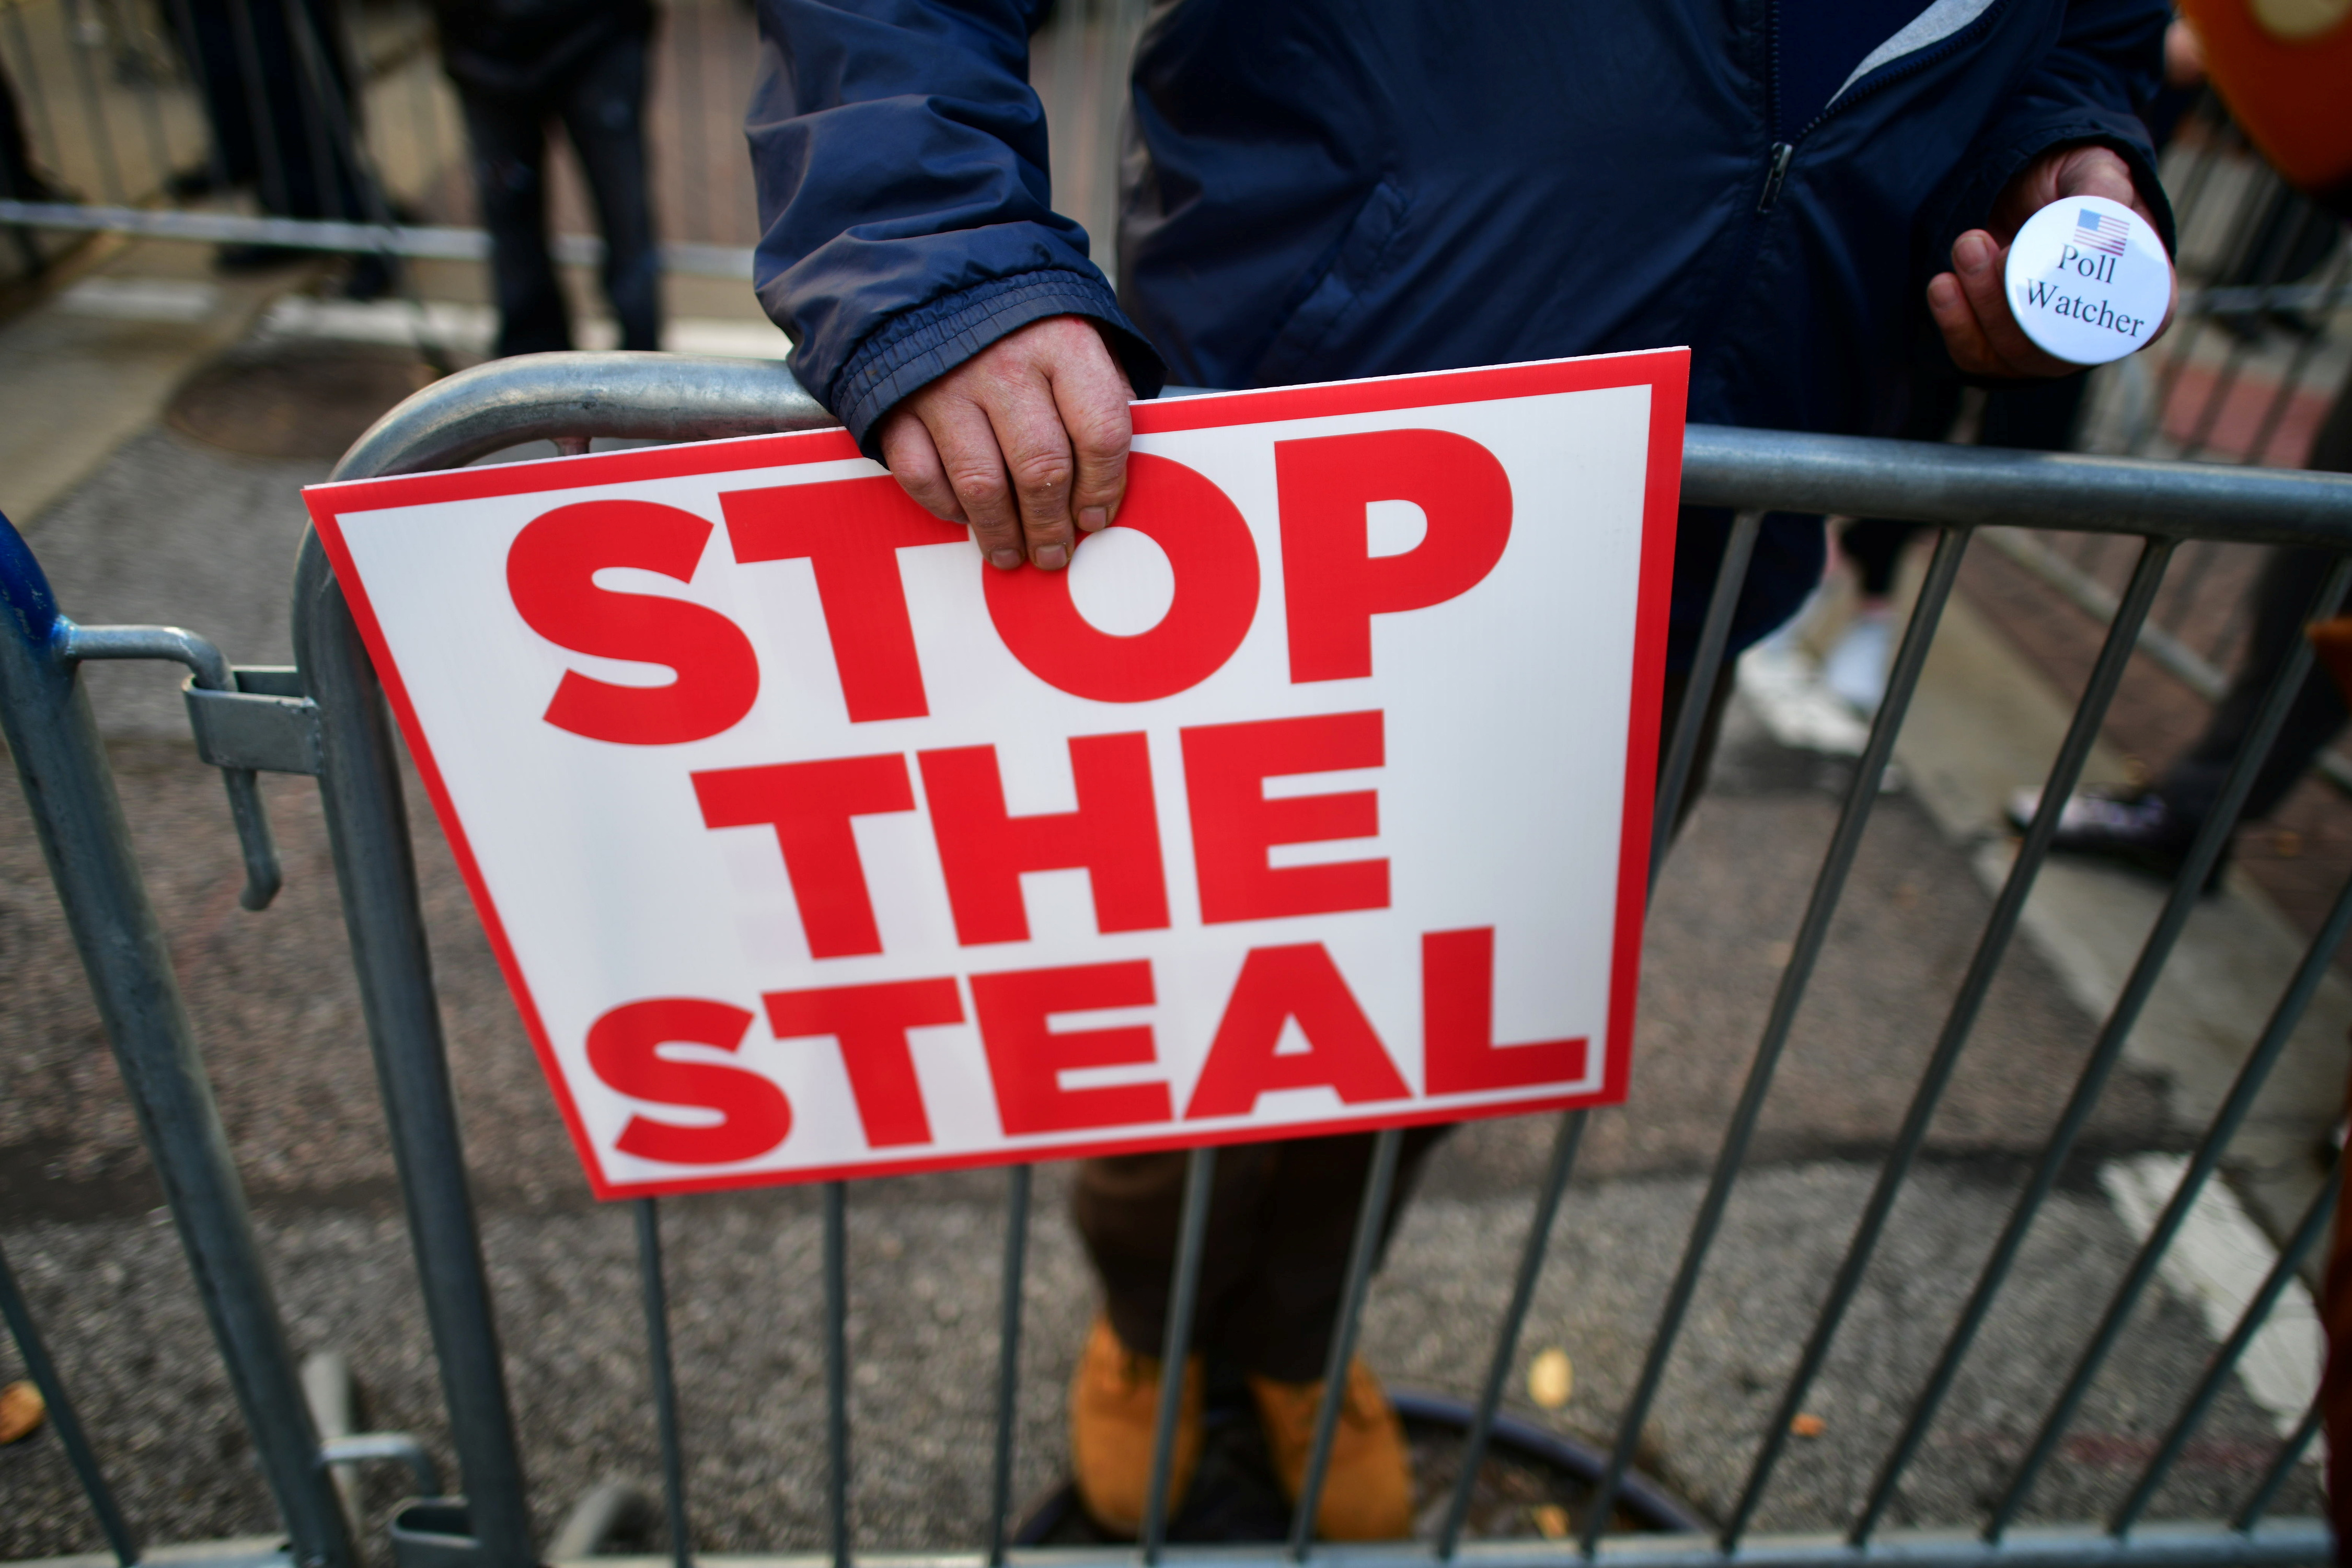 """A supporter of President Donald Trump holds a sign stating """"STOP THE STEAL"""" and a pin stating """"Poll Watcher""""in Philadelphia, Pennsylvania on November 6, 2020. (Mark Makela/Reuters)"""